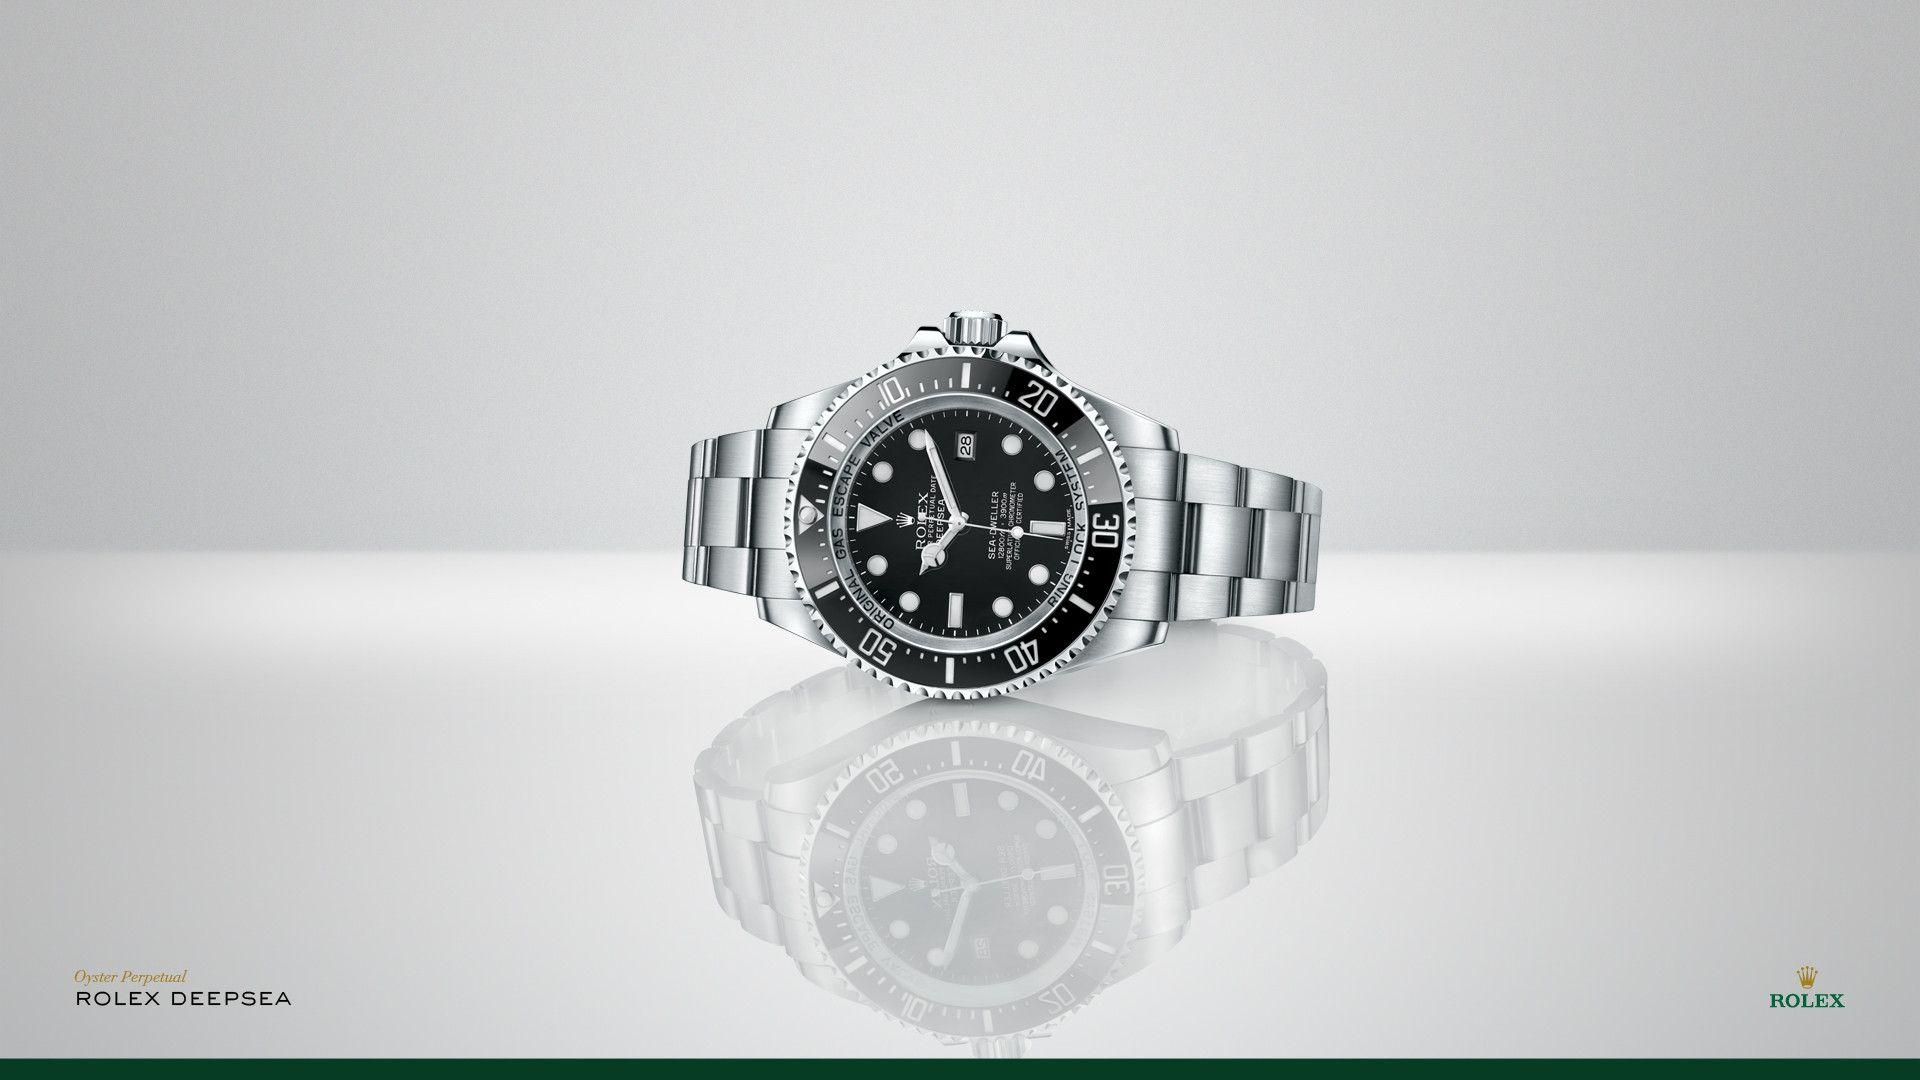 Rolex Wallpapers   Wallpaper Cave Rolex Watches Wallpapers   Rolex Official Downloads